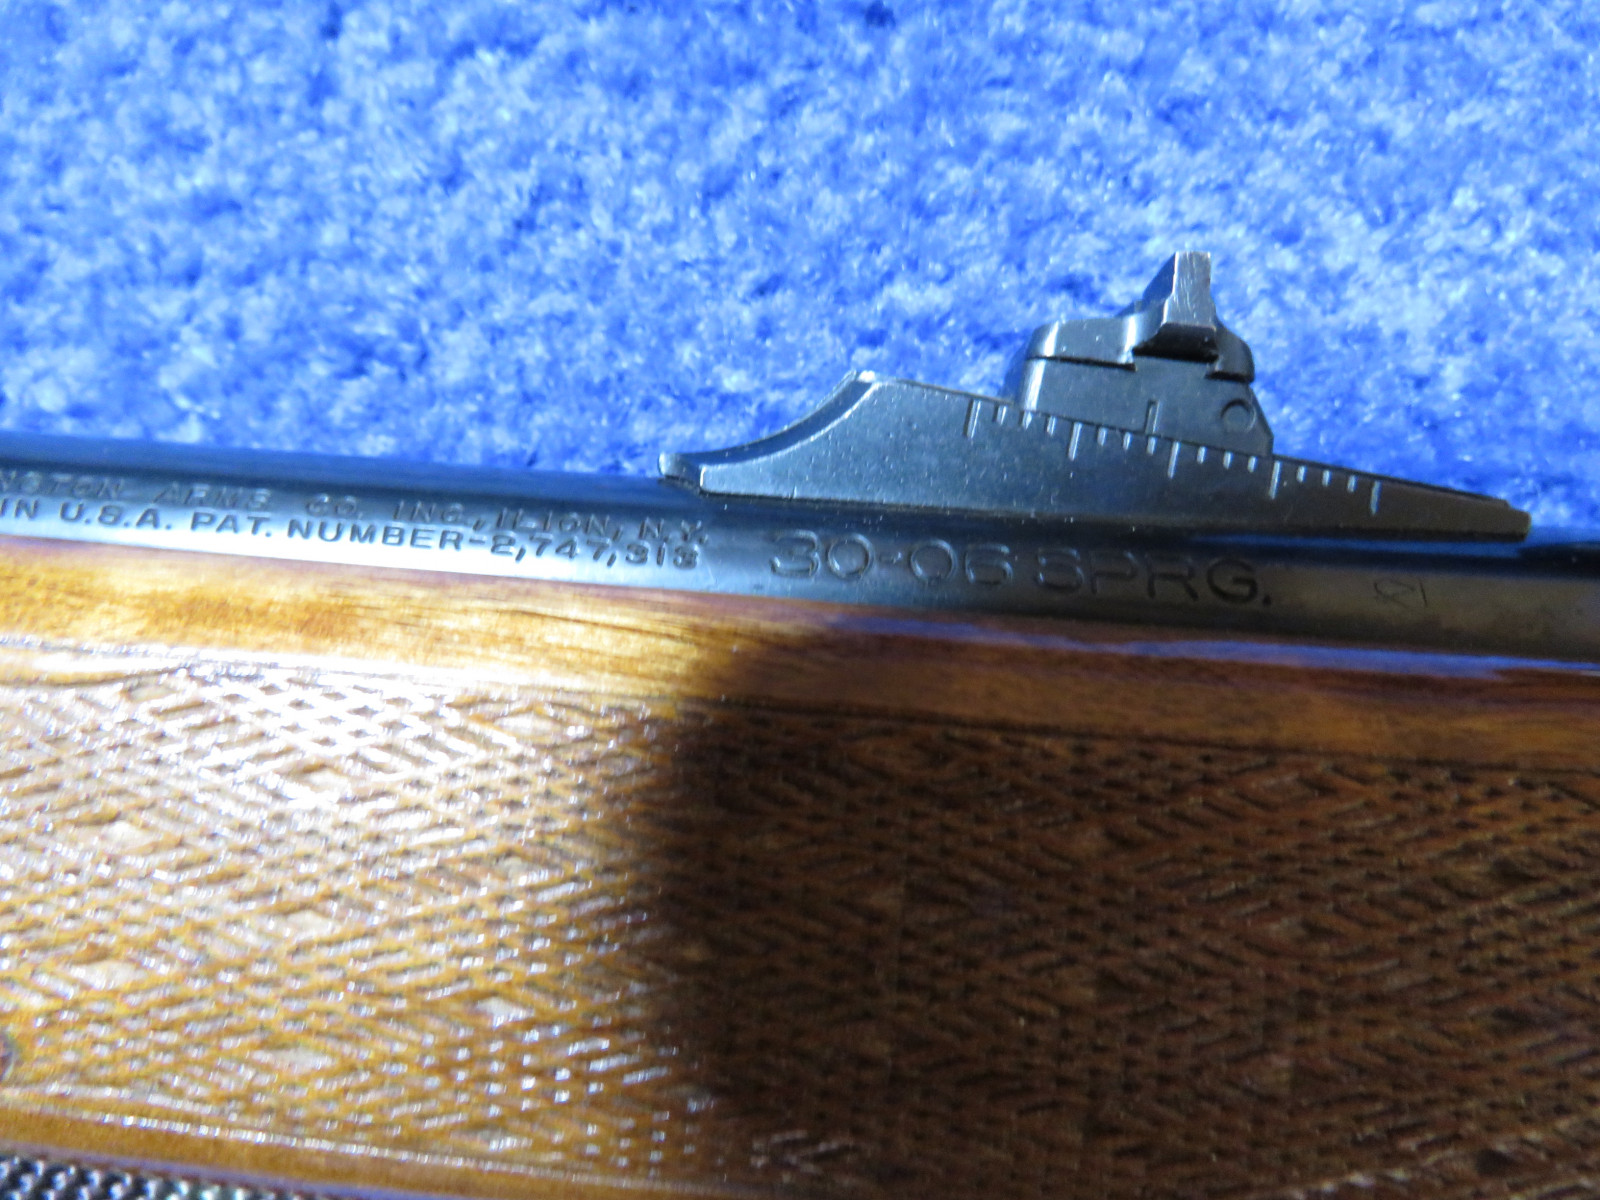 Remington 30.06 Model 742 Woodmaster Rifle - Image 5